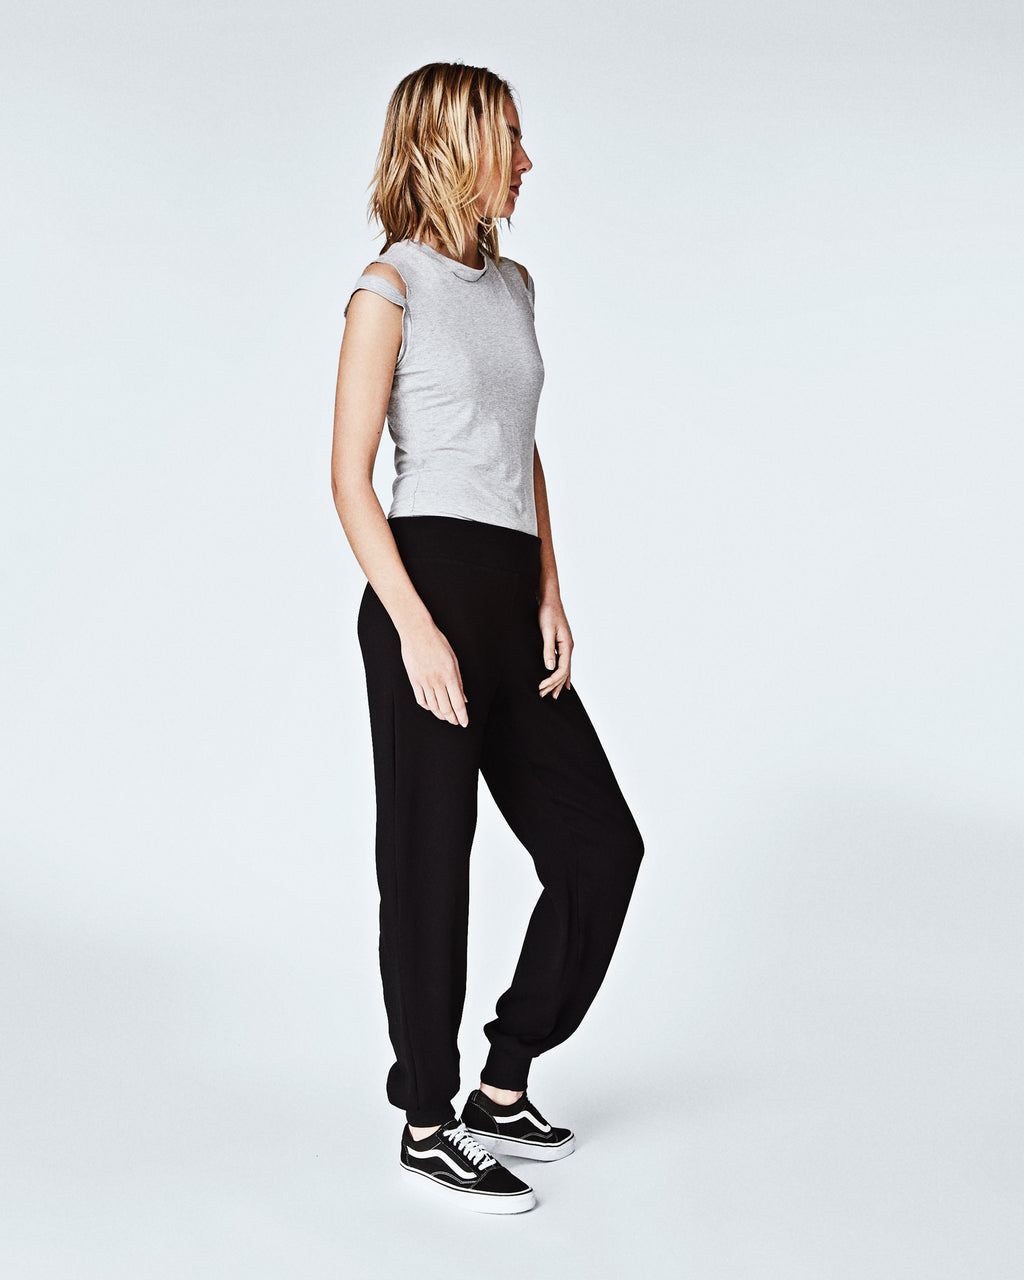 BH10358 - CRINKLE SATIN BACK CREPE JOGGER PANTS - bottoms - pants - In a satin crepe, these wear-everywhere joggers a chic yet casual. With a tapered fit, these bottomsare perfectly paired with a t-shirt and sneakers for a effortlessly cool vibe. Finished with an elastic waistband and unlined.